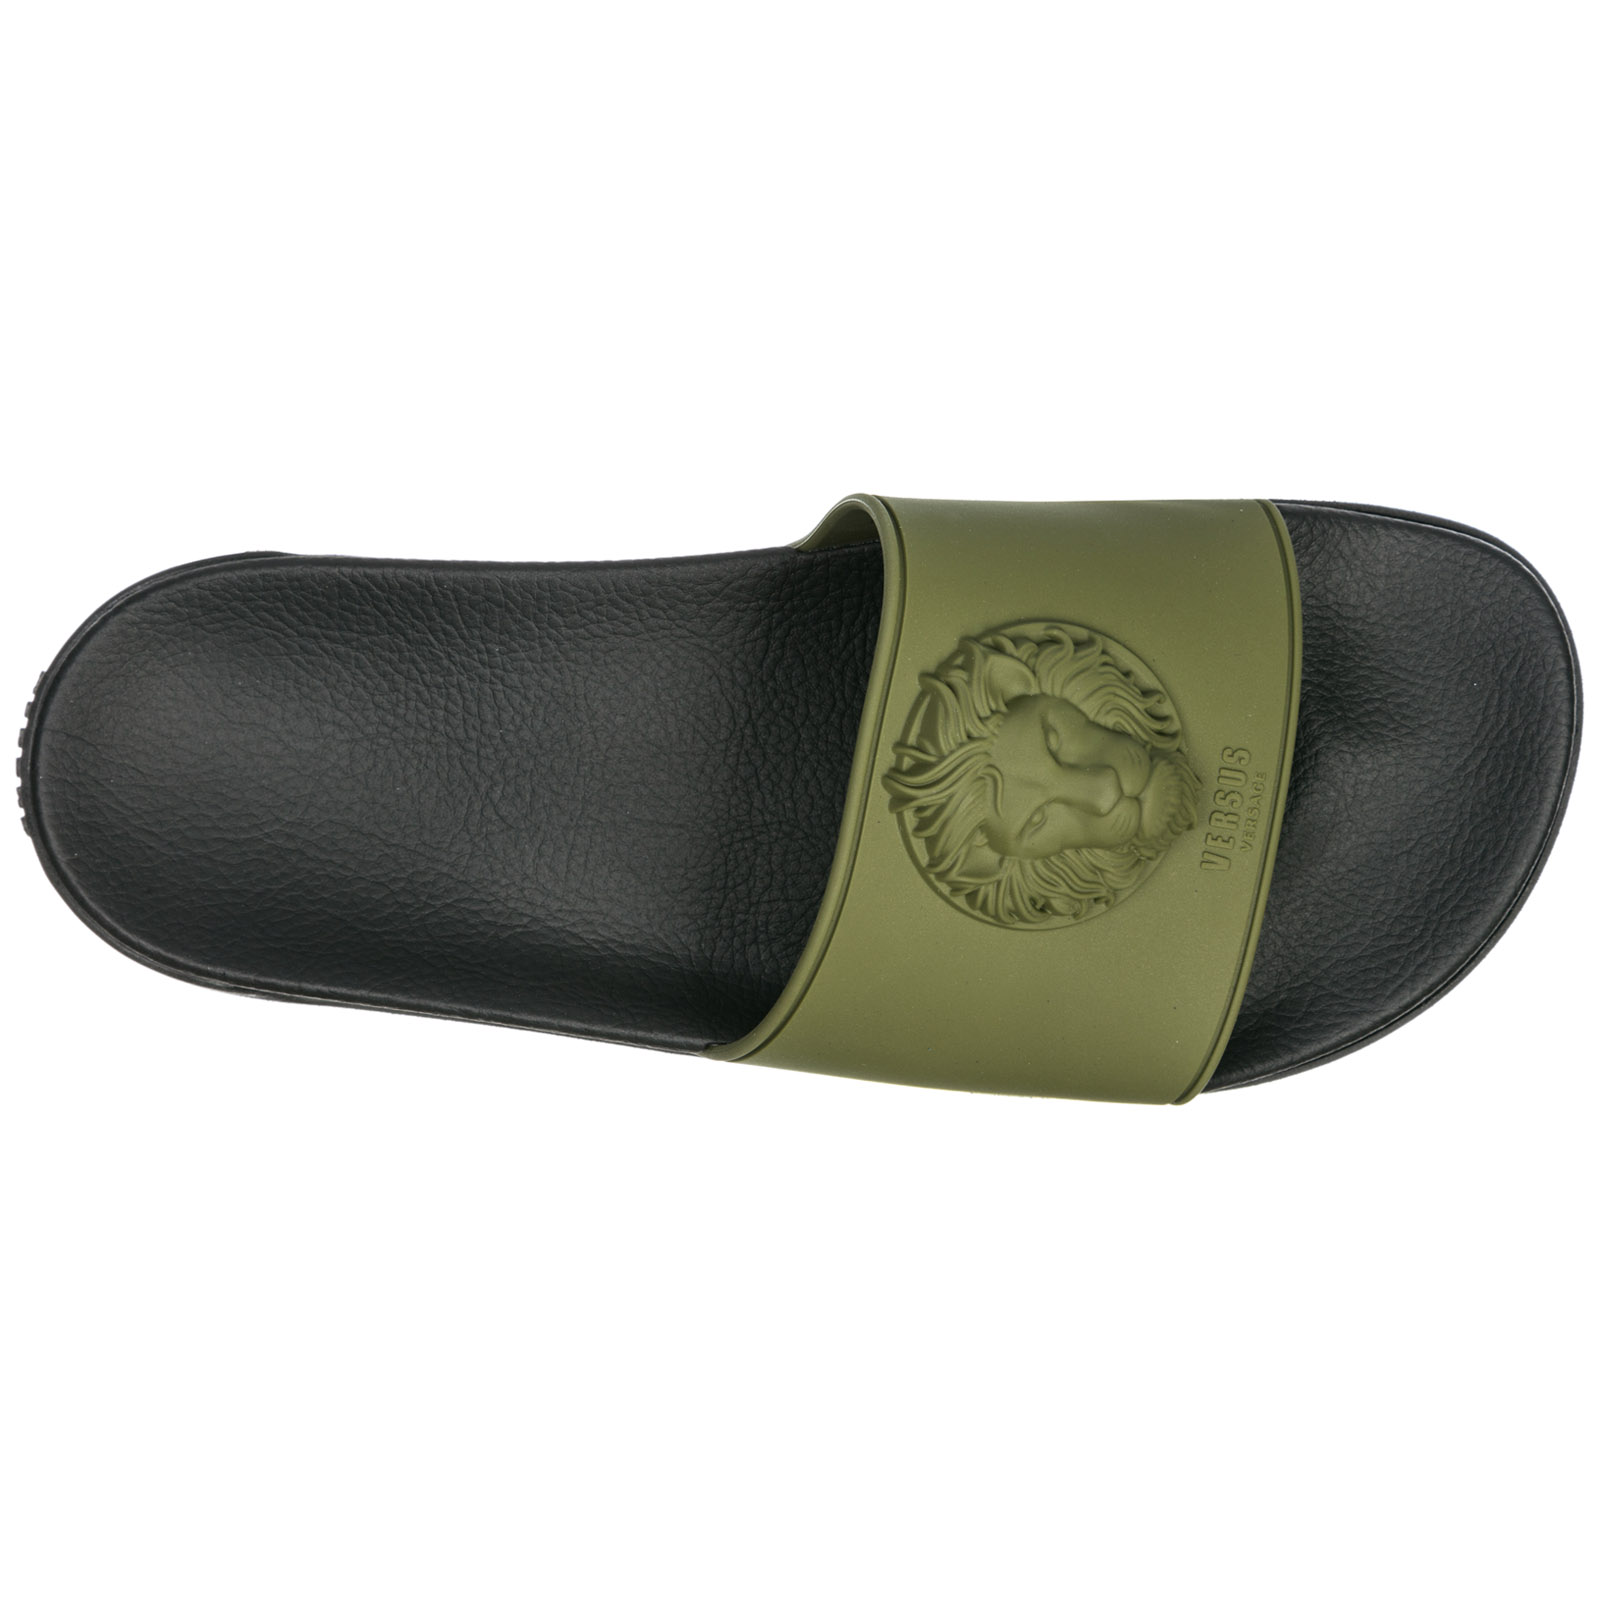 Men's slippers sandals rubber  lion head